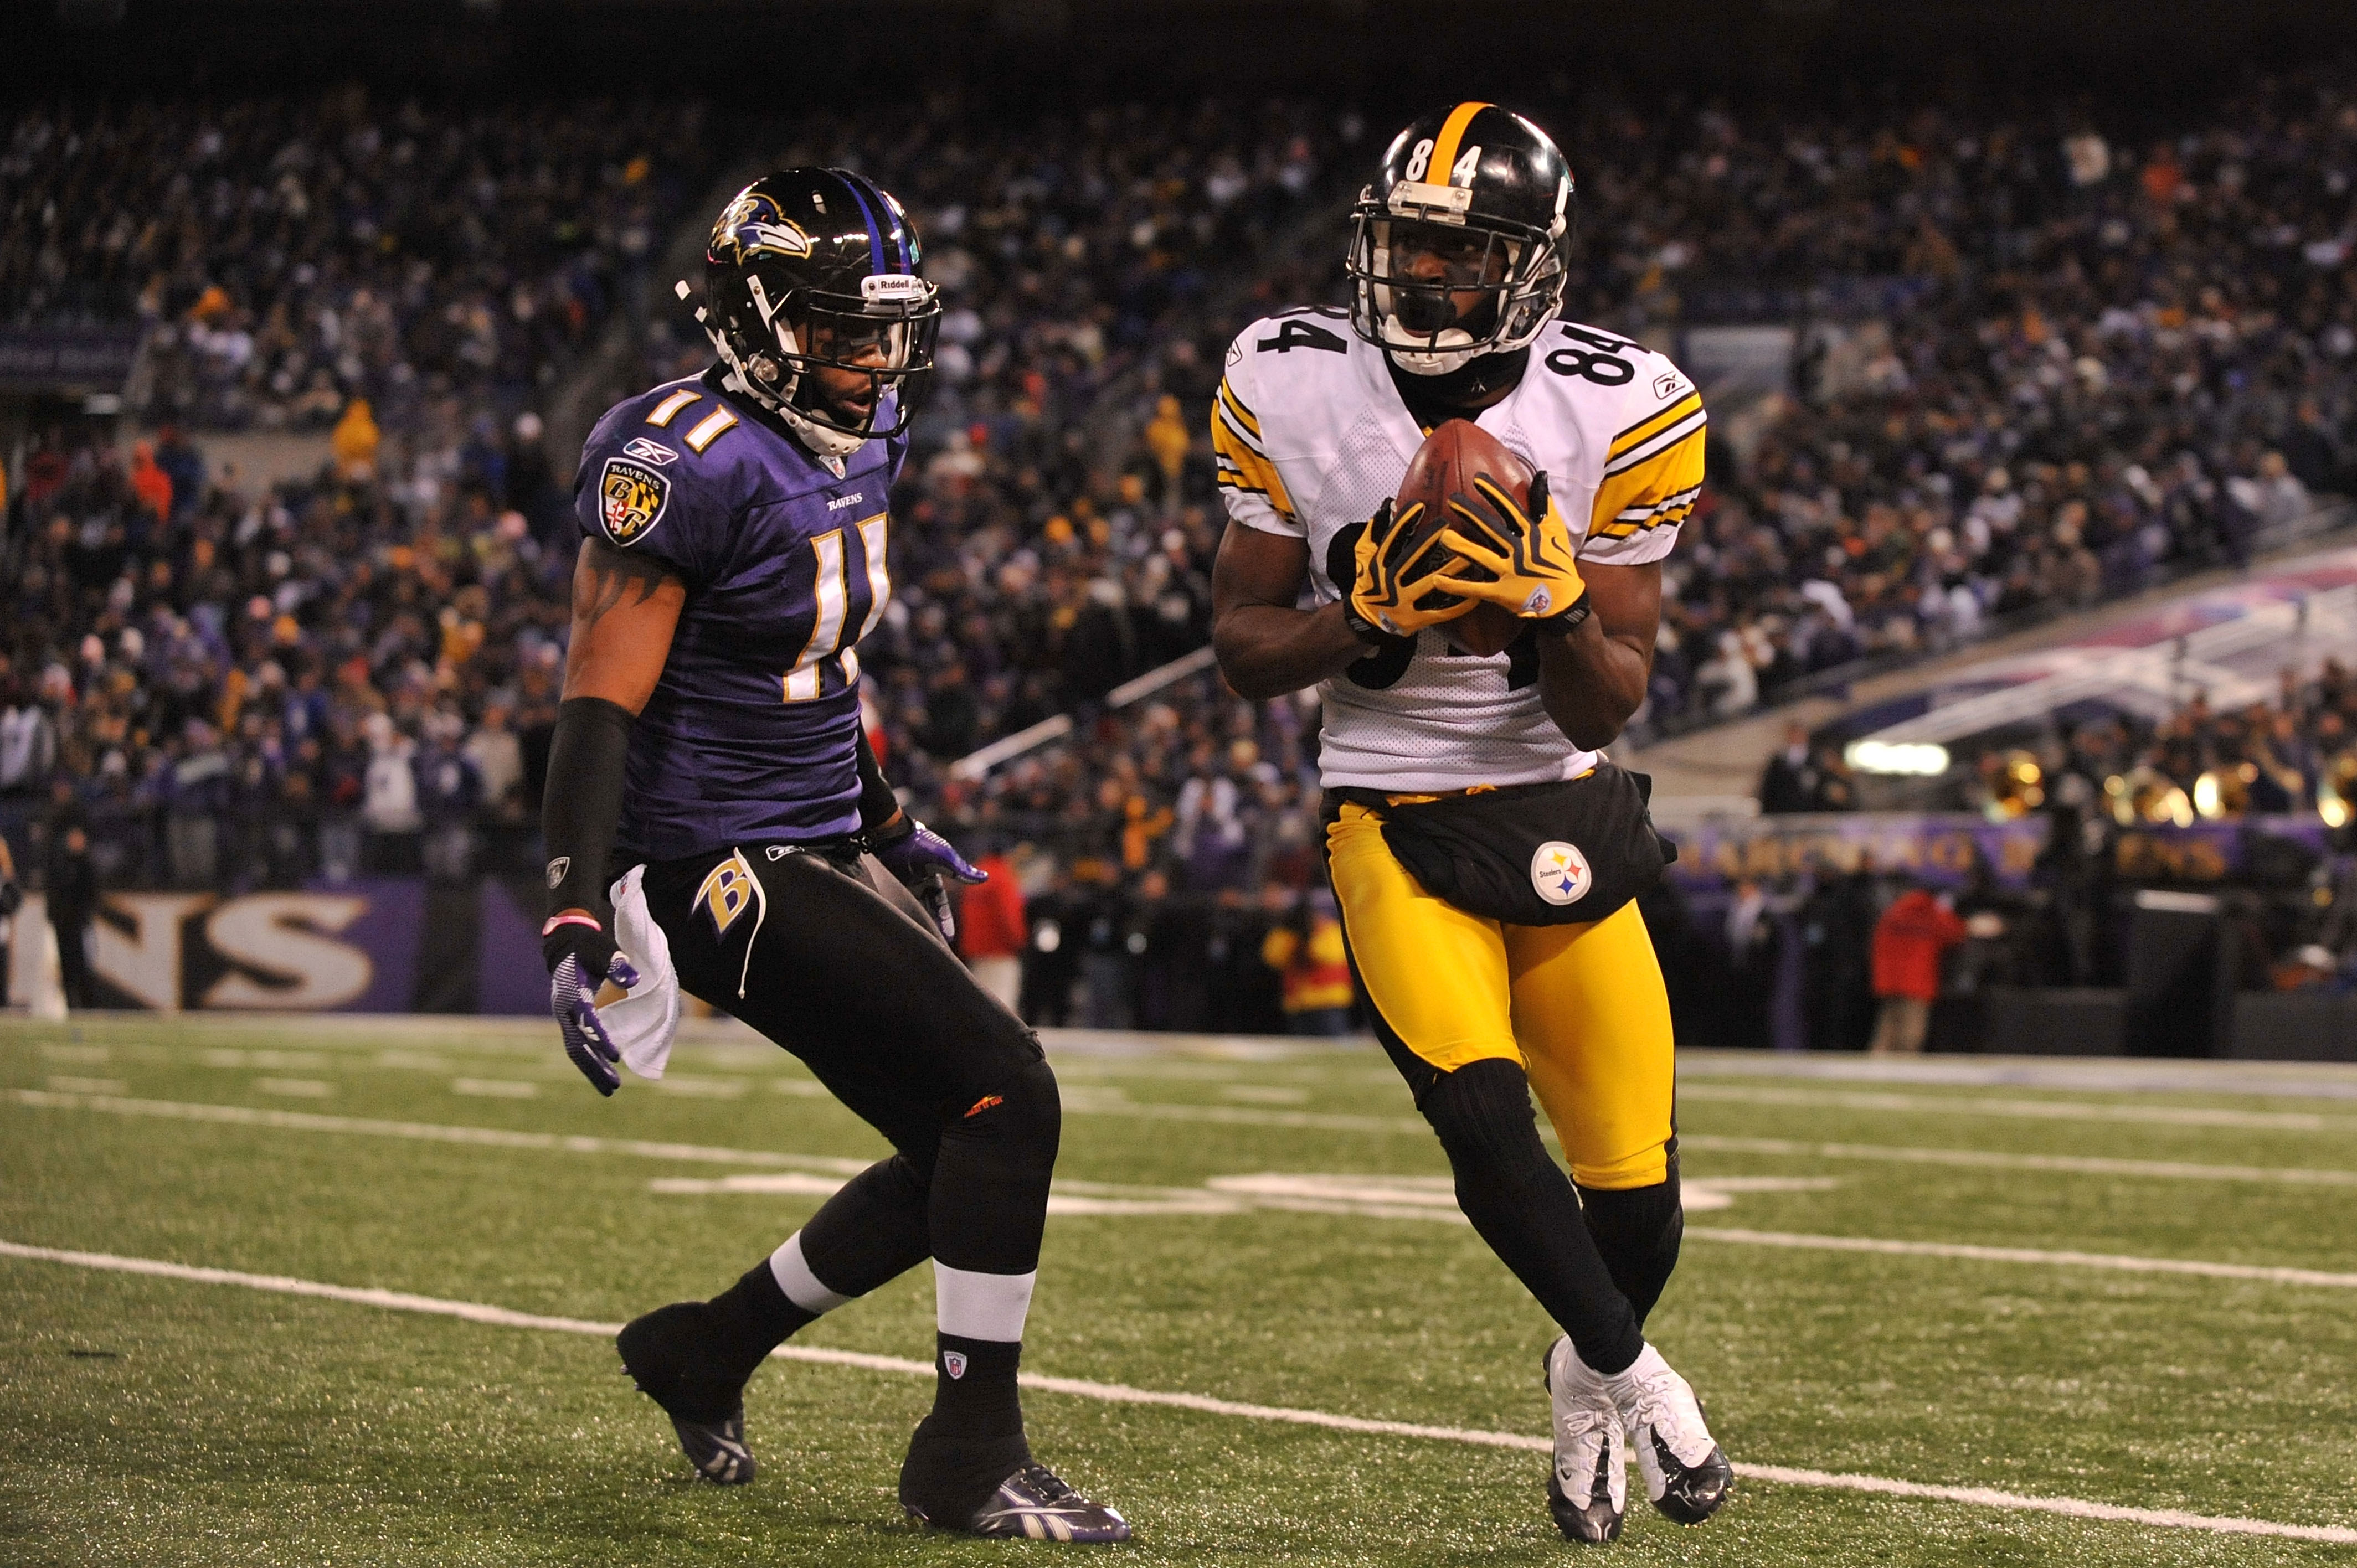 BALTIMORE, MD - DECEMBER 05:  Wide receiver Antonio Brown #84 of the Pittsburgh Steelers catches the ball against wide receiver Marcus Smith #11 of the the Baltimore Ravens during the fourth quarter of the game at M&T Bank Stadium on December 5, 2010 in B